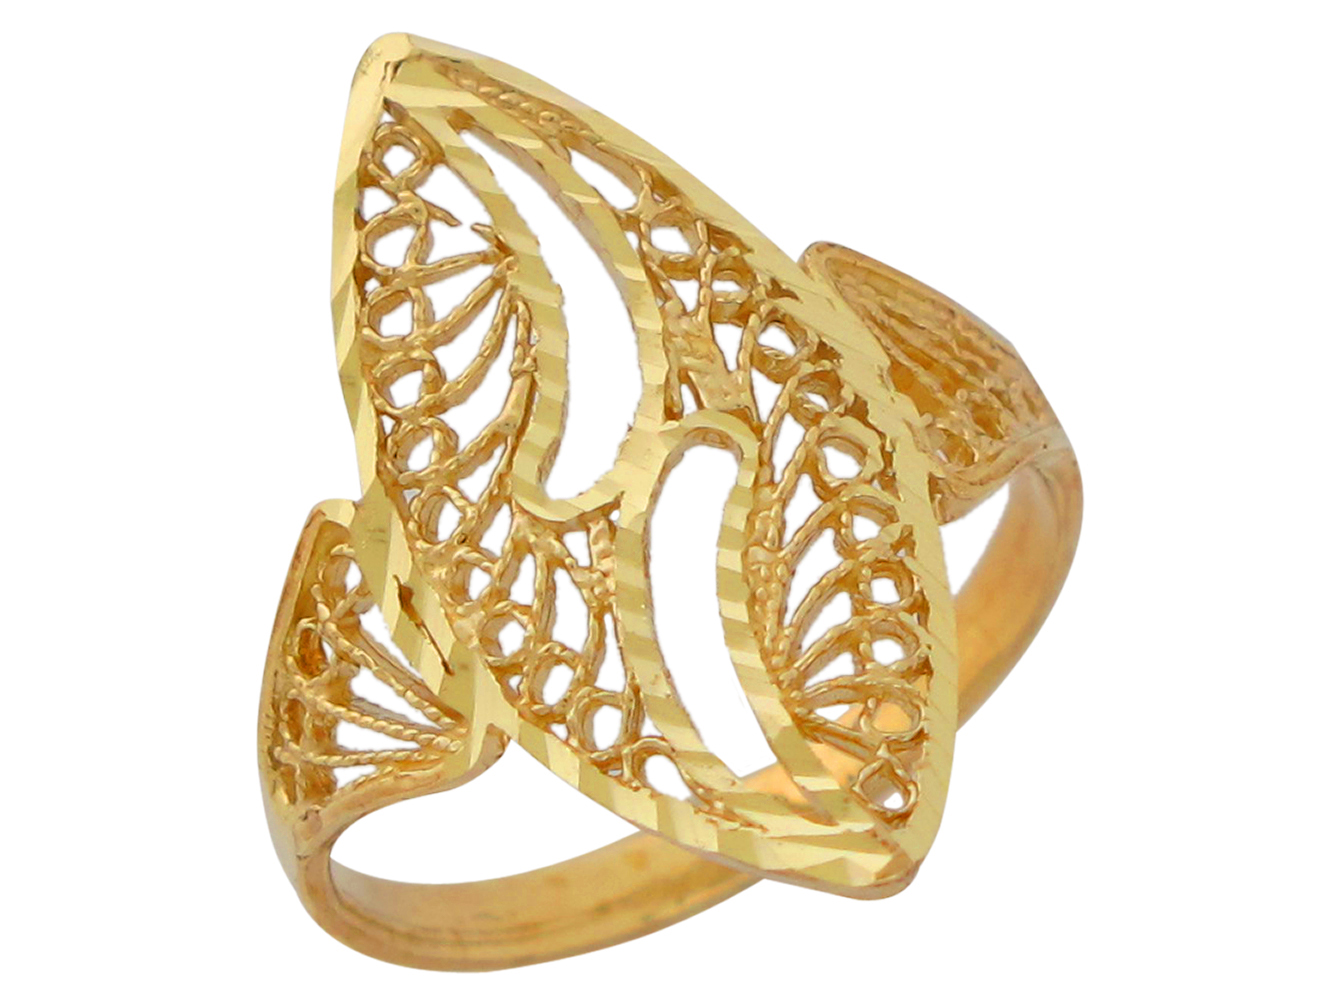 10k or 14k Yellow Gold Modern Filigree Ladies Ring | eBay